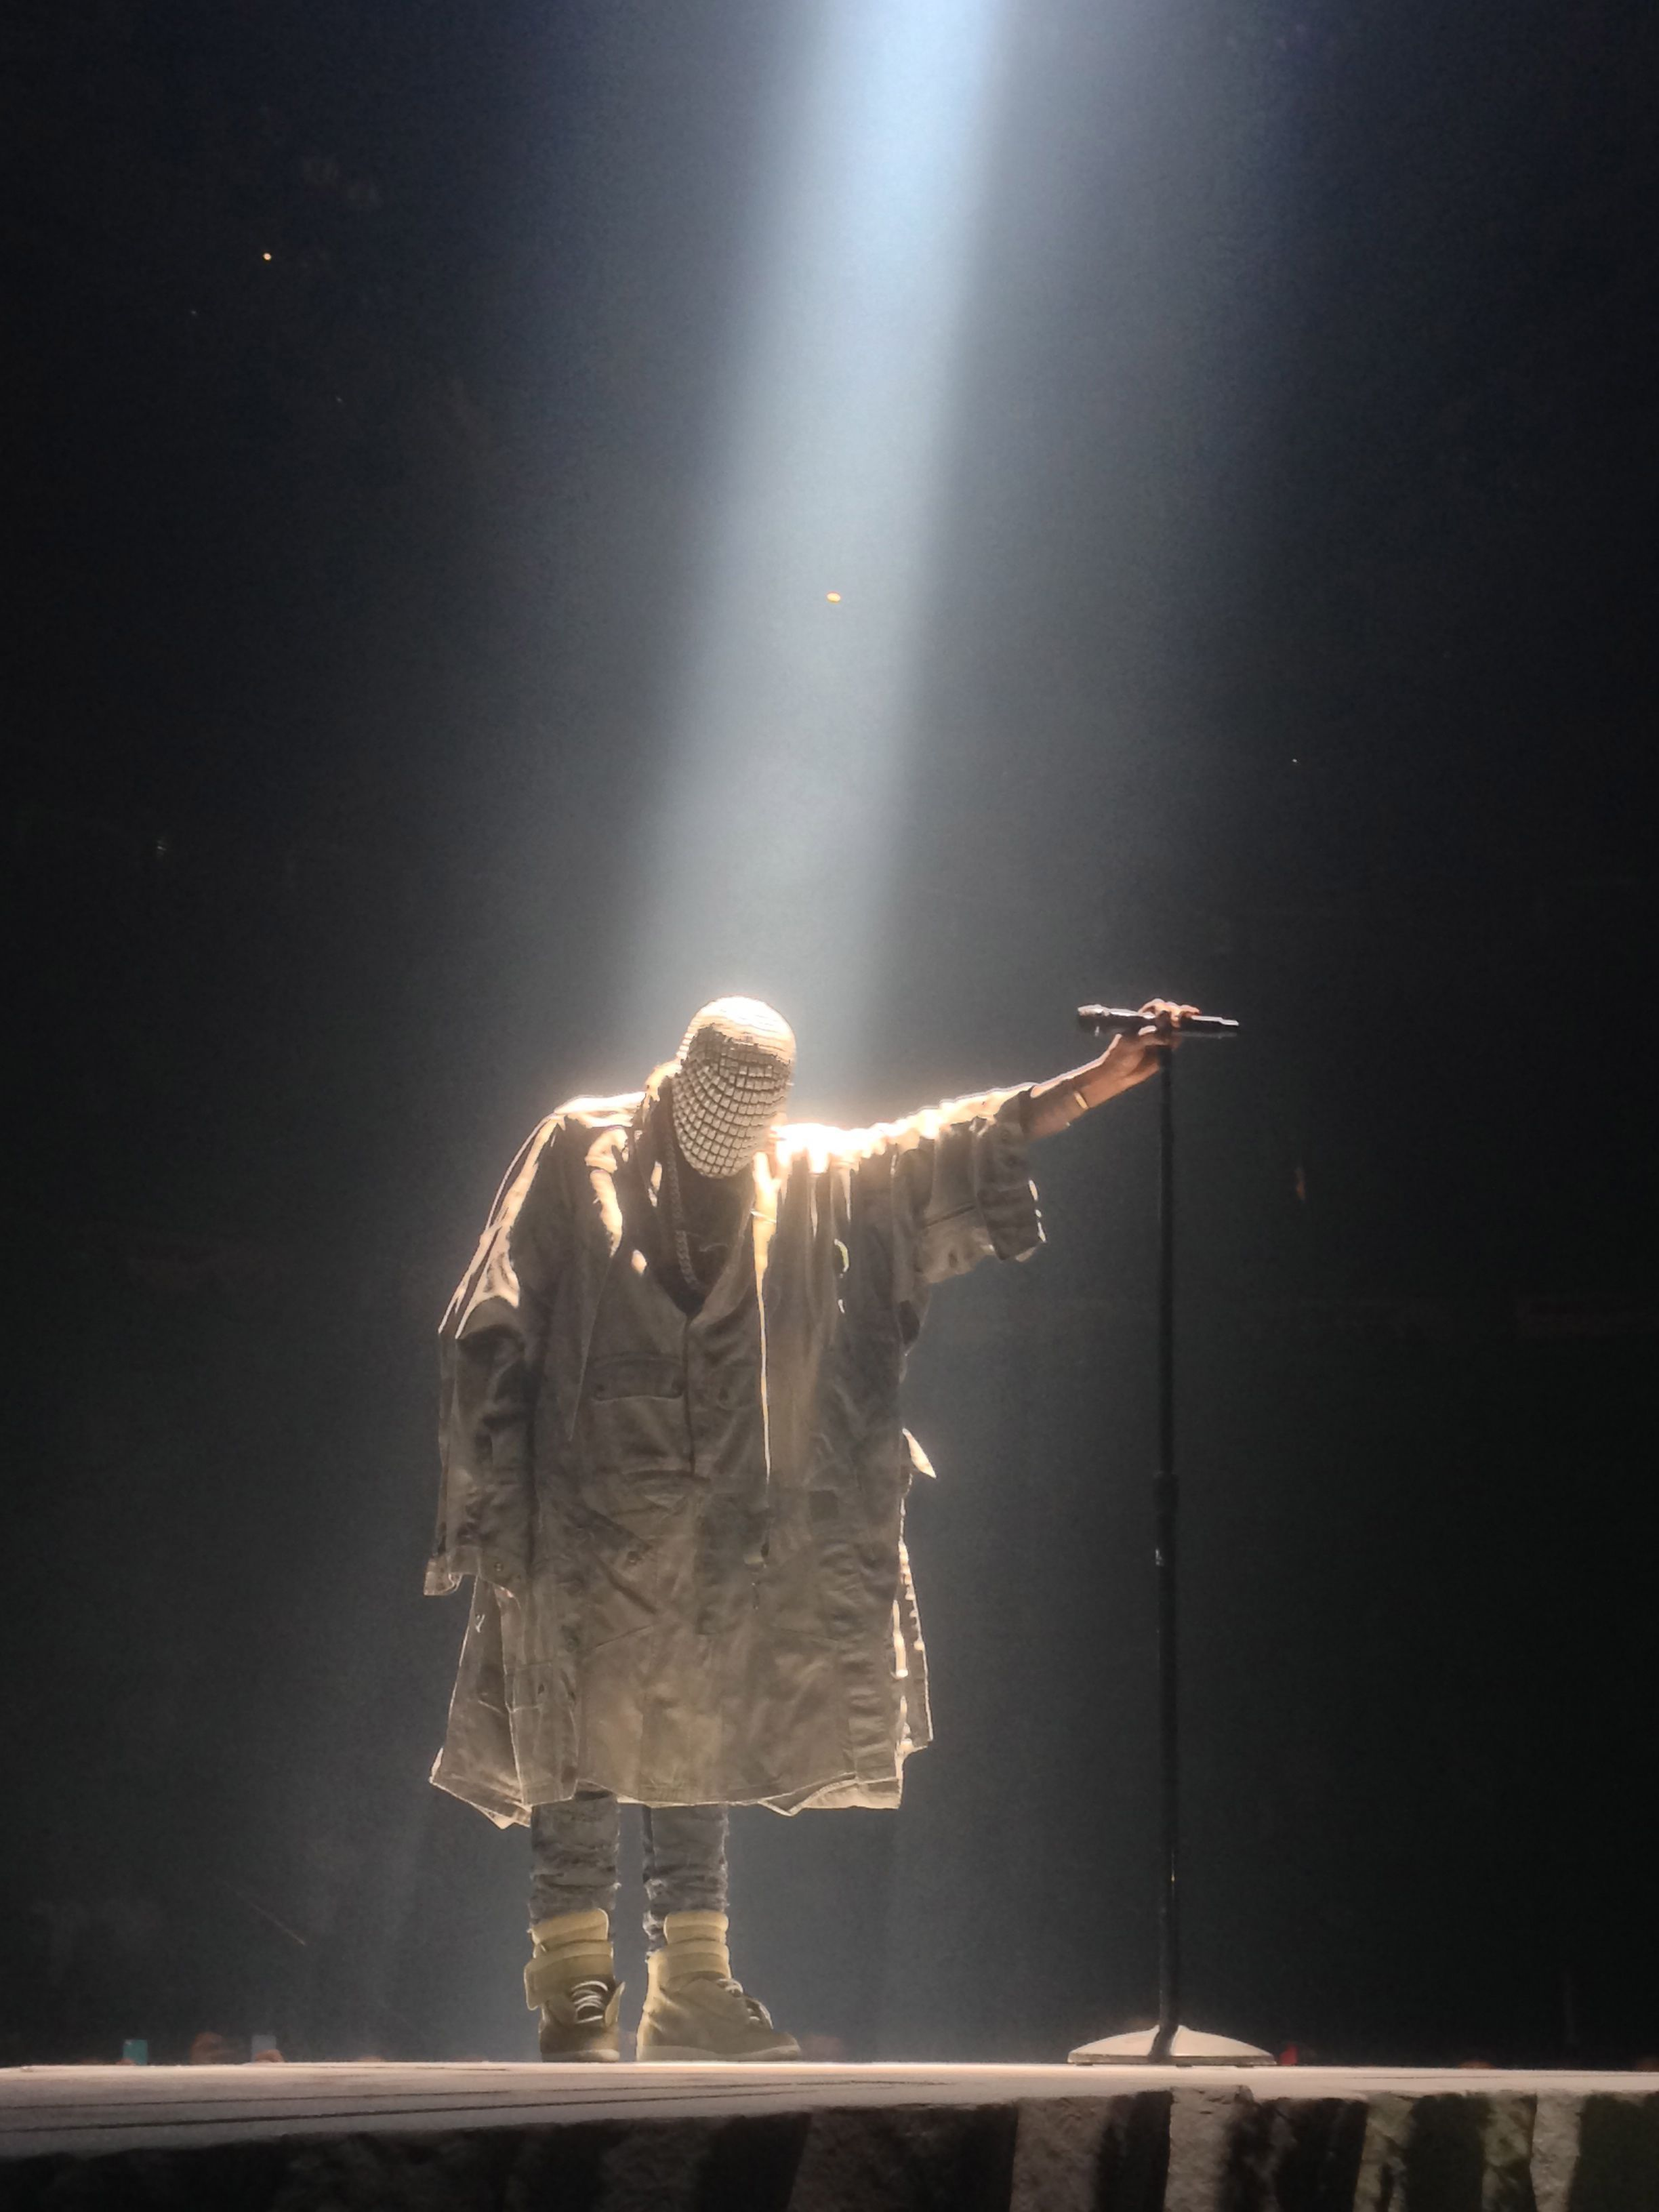 Kanye West Wears Custom Maison Martin Margiela For Yeezus Tour 1 Yeezus Tour Yeezus Kanye West Yeezus